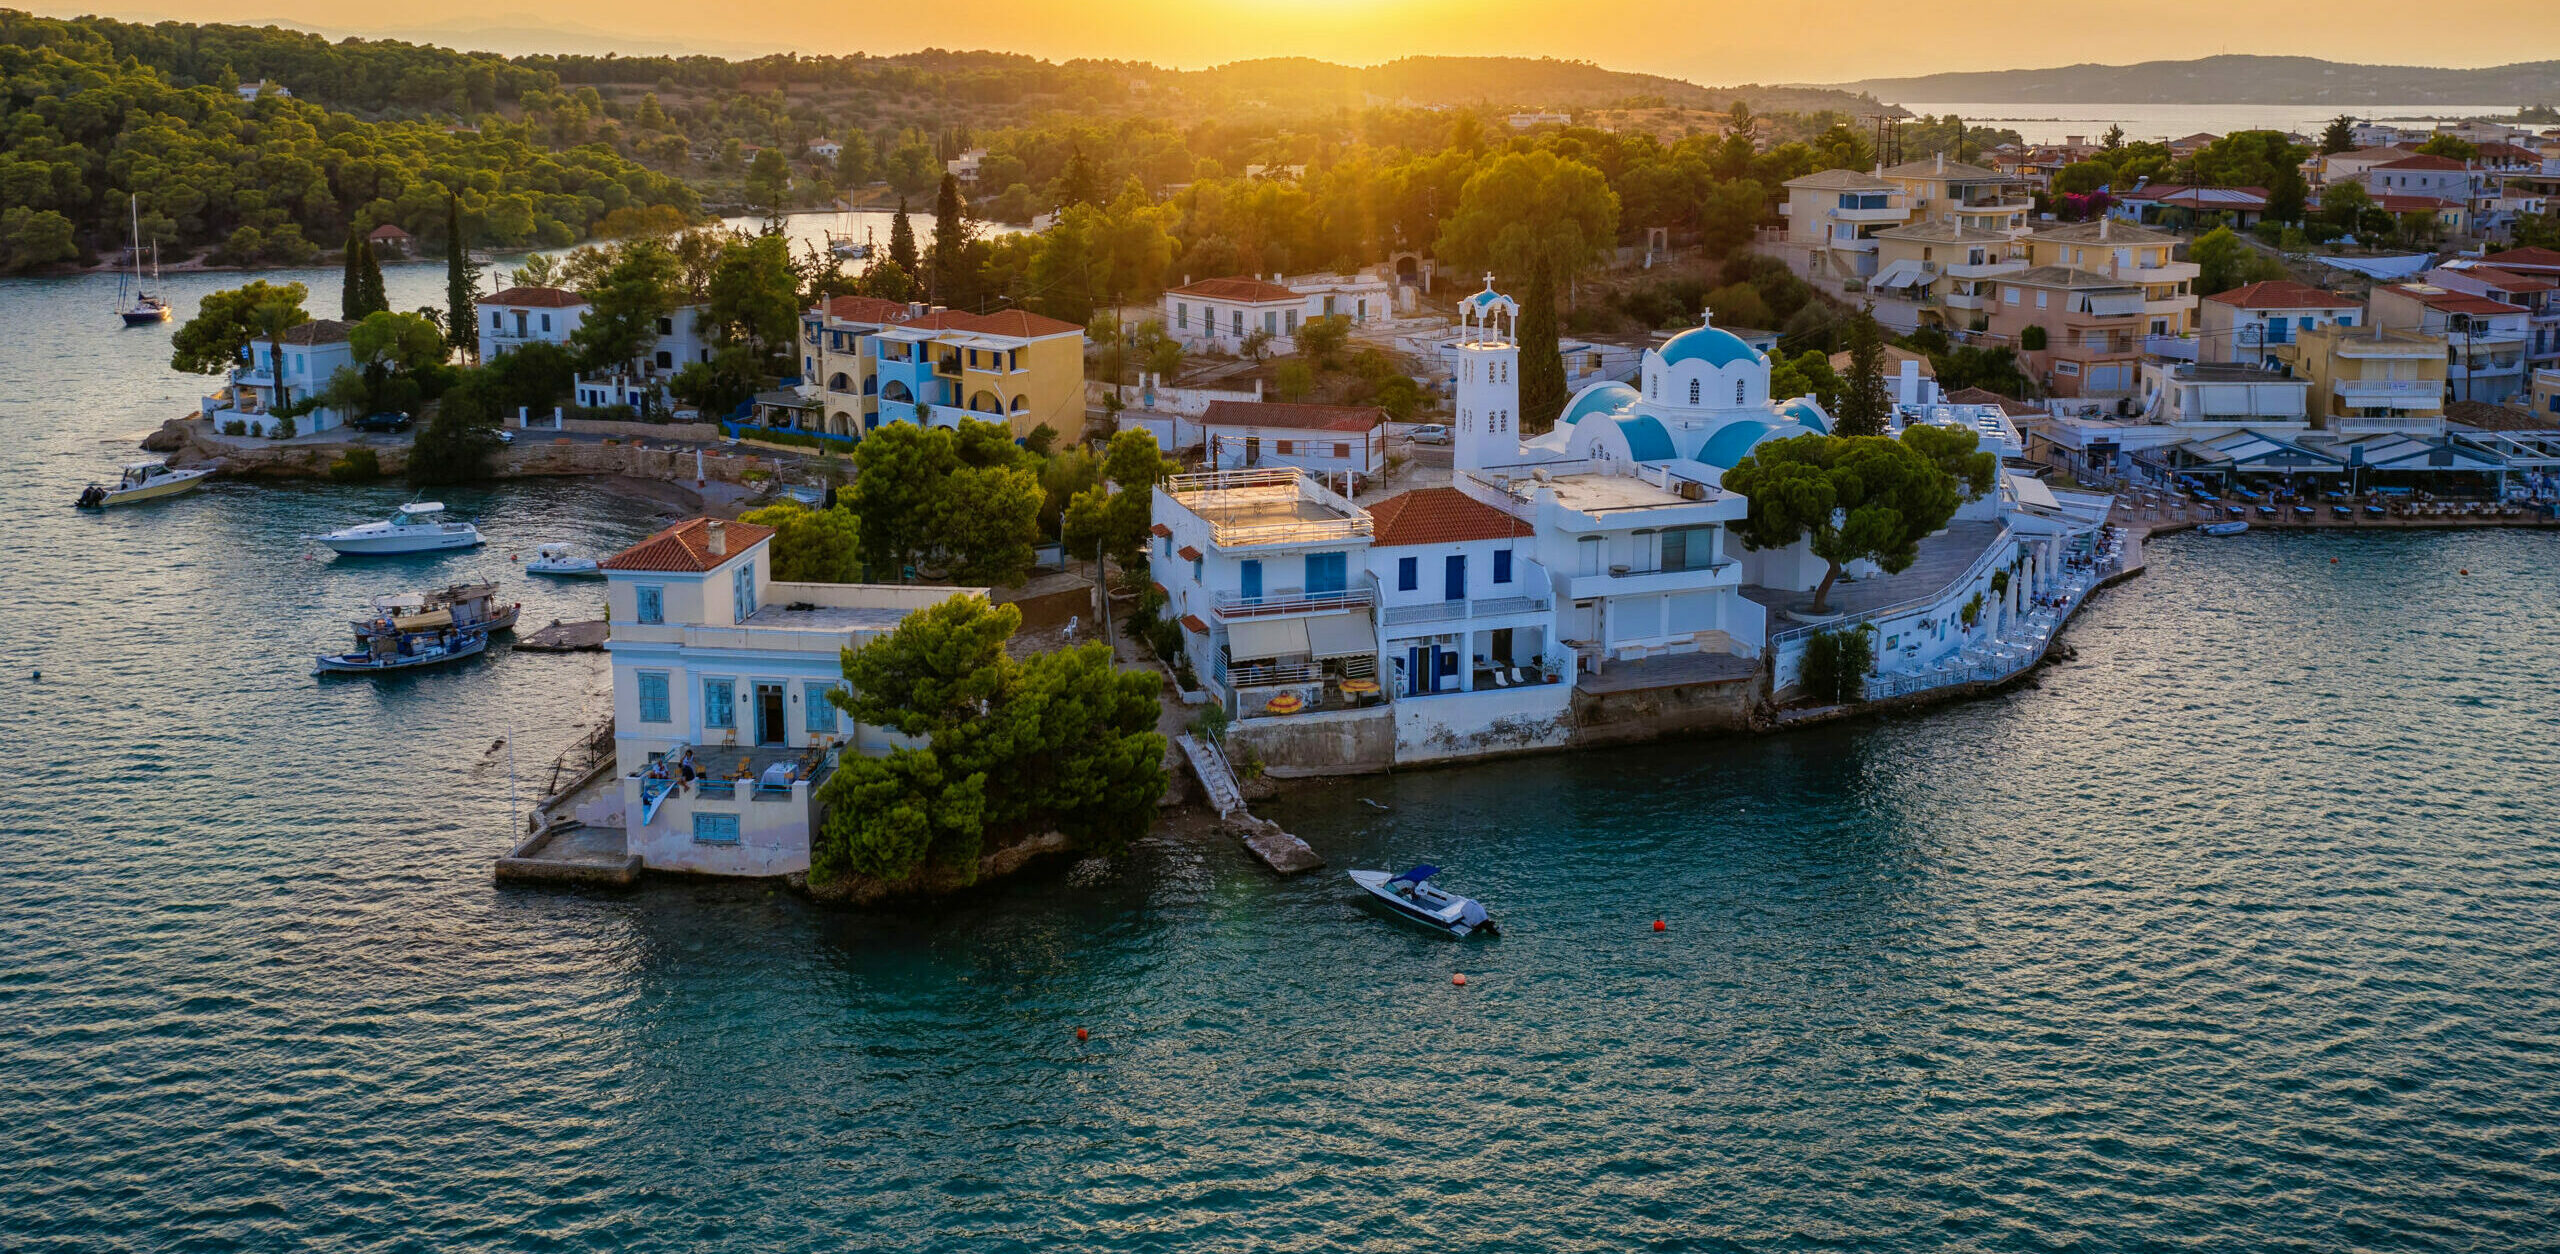 Porto Heli: check out the Riviera of the Peloponnese